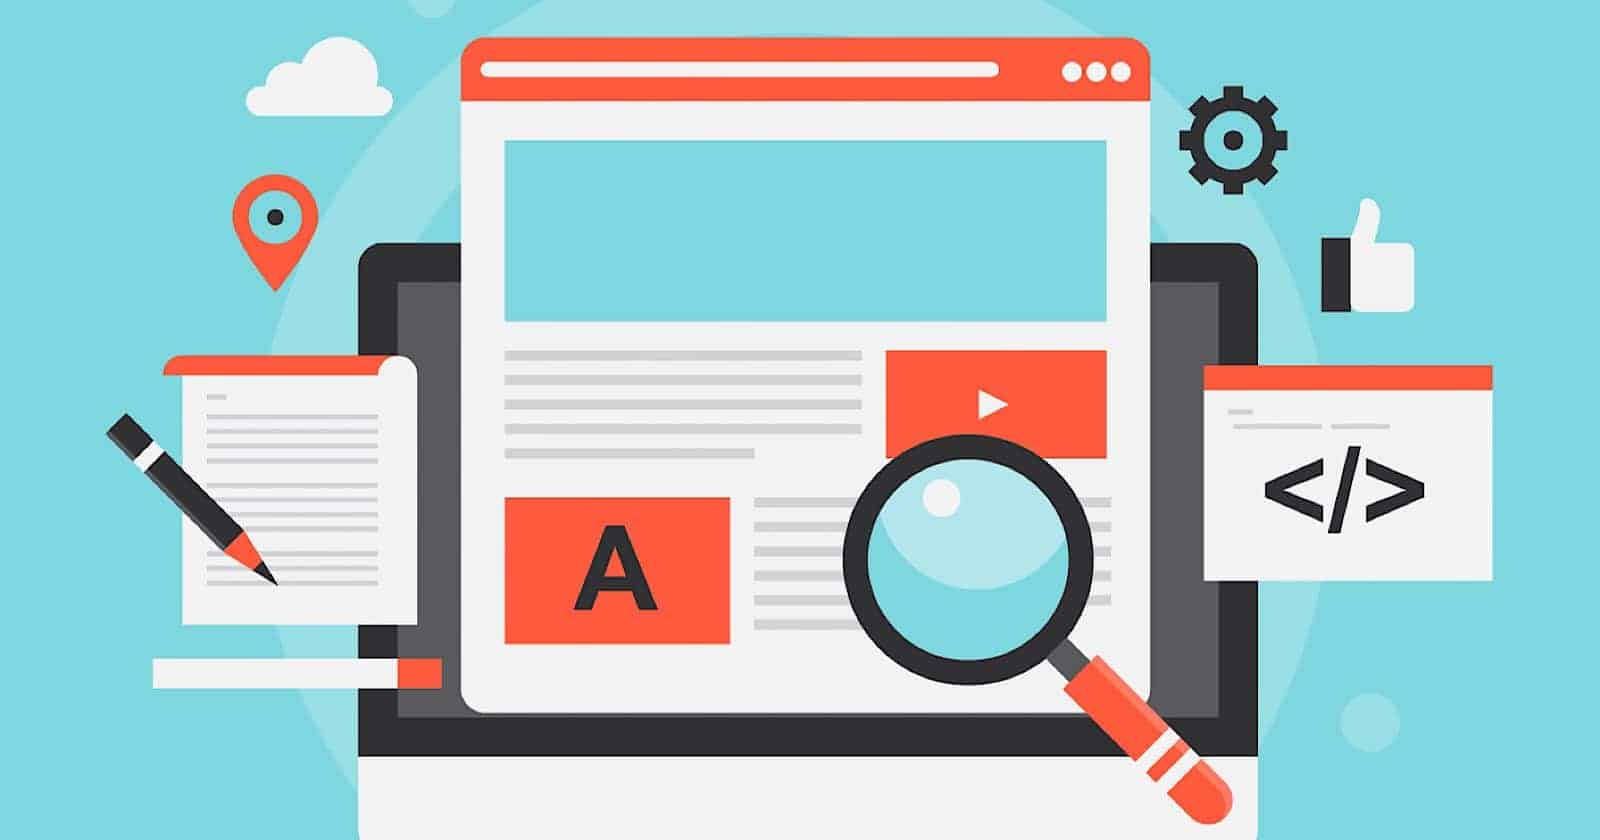 Image for Google: Click Depth Matters More for SEO than URL Structure - Search Engine Journal